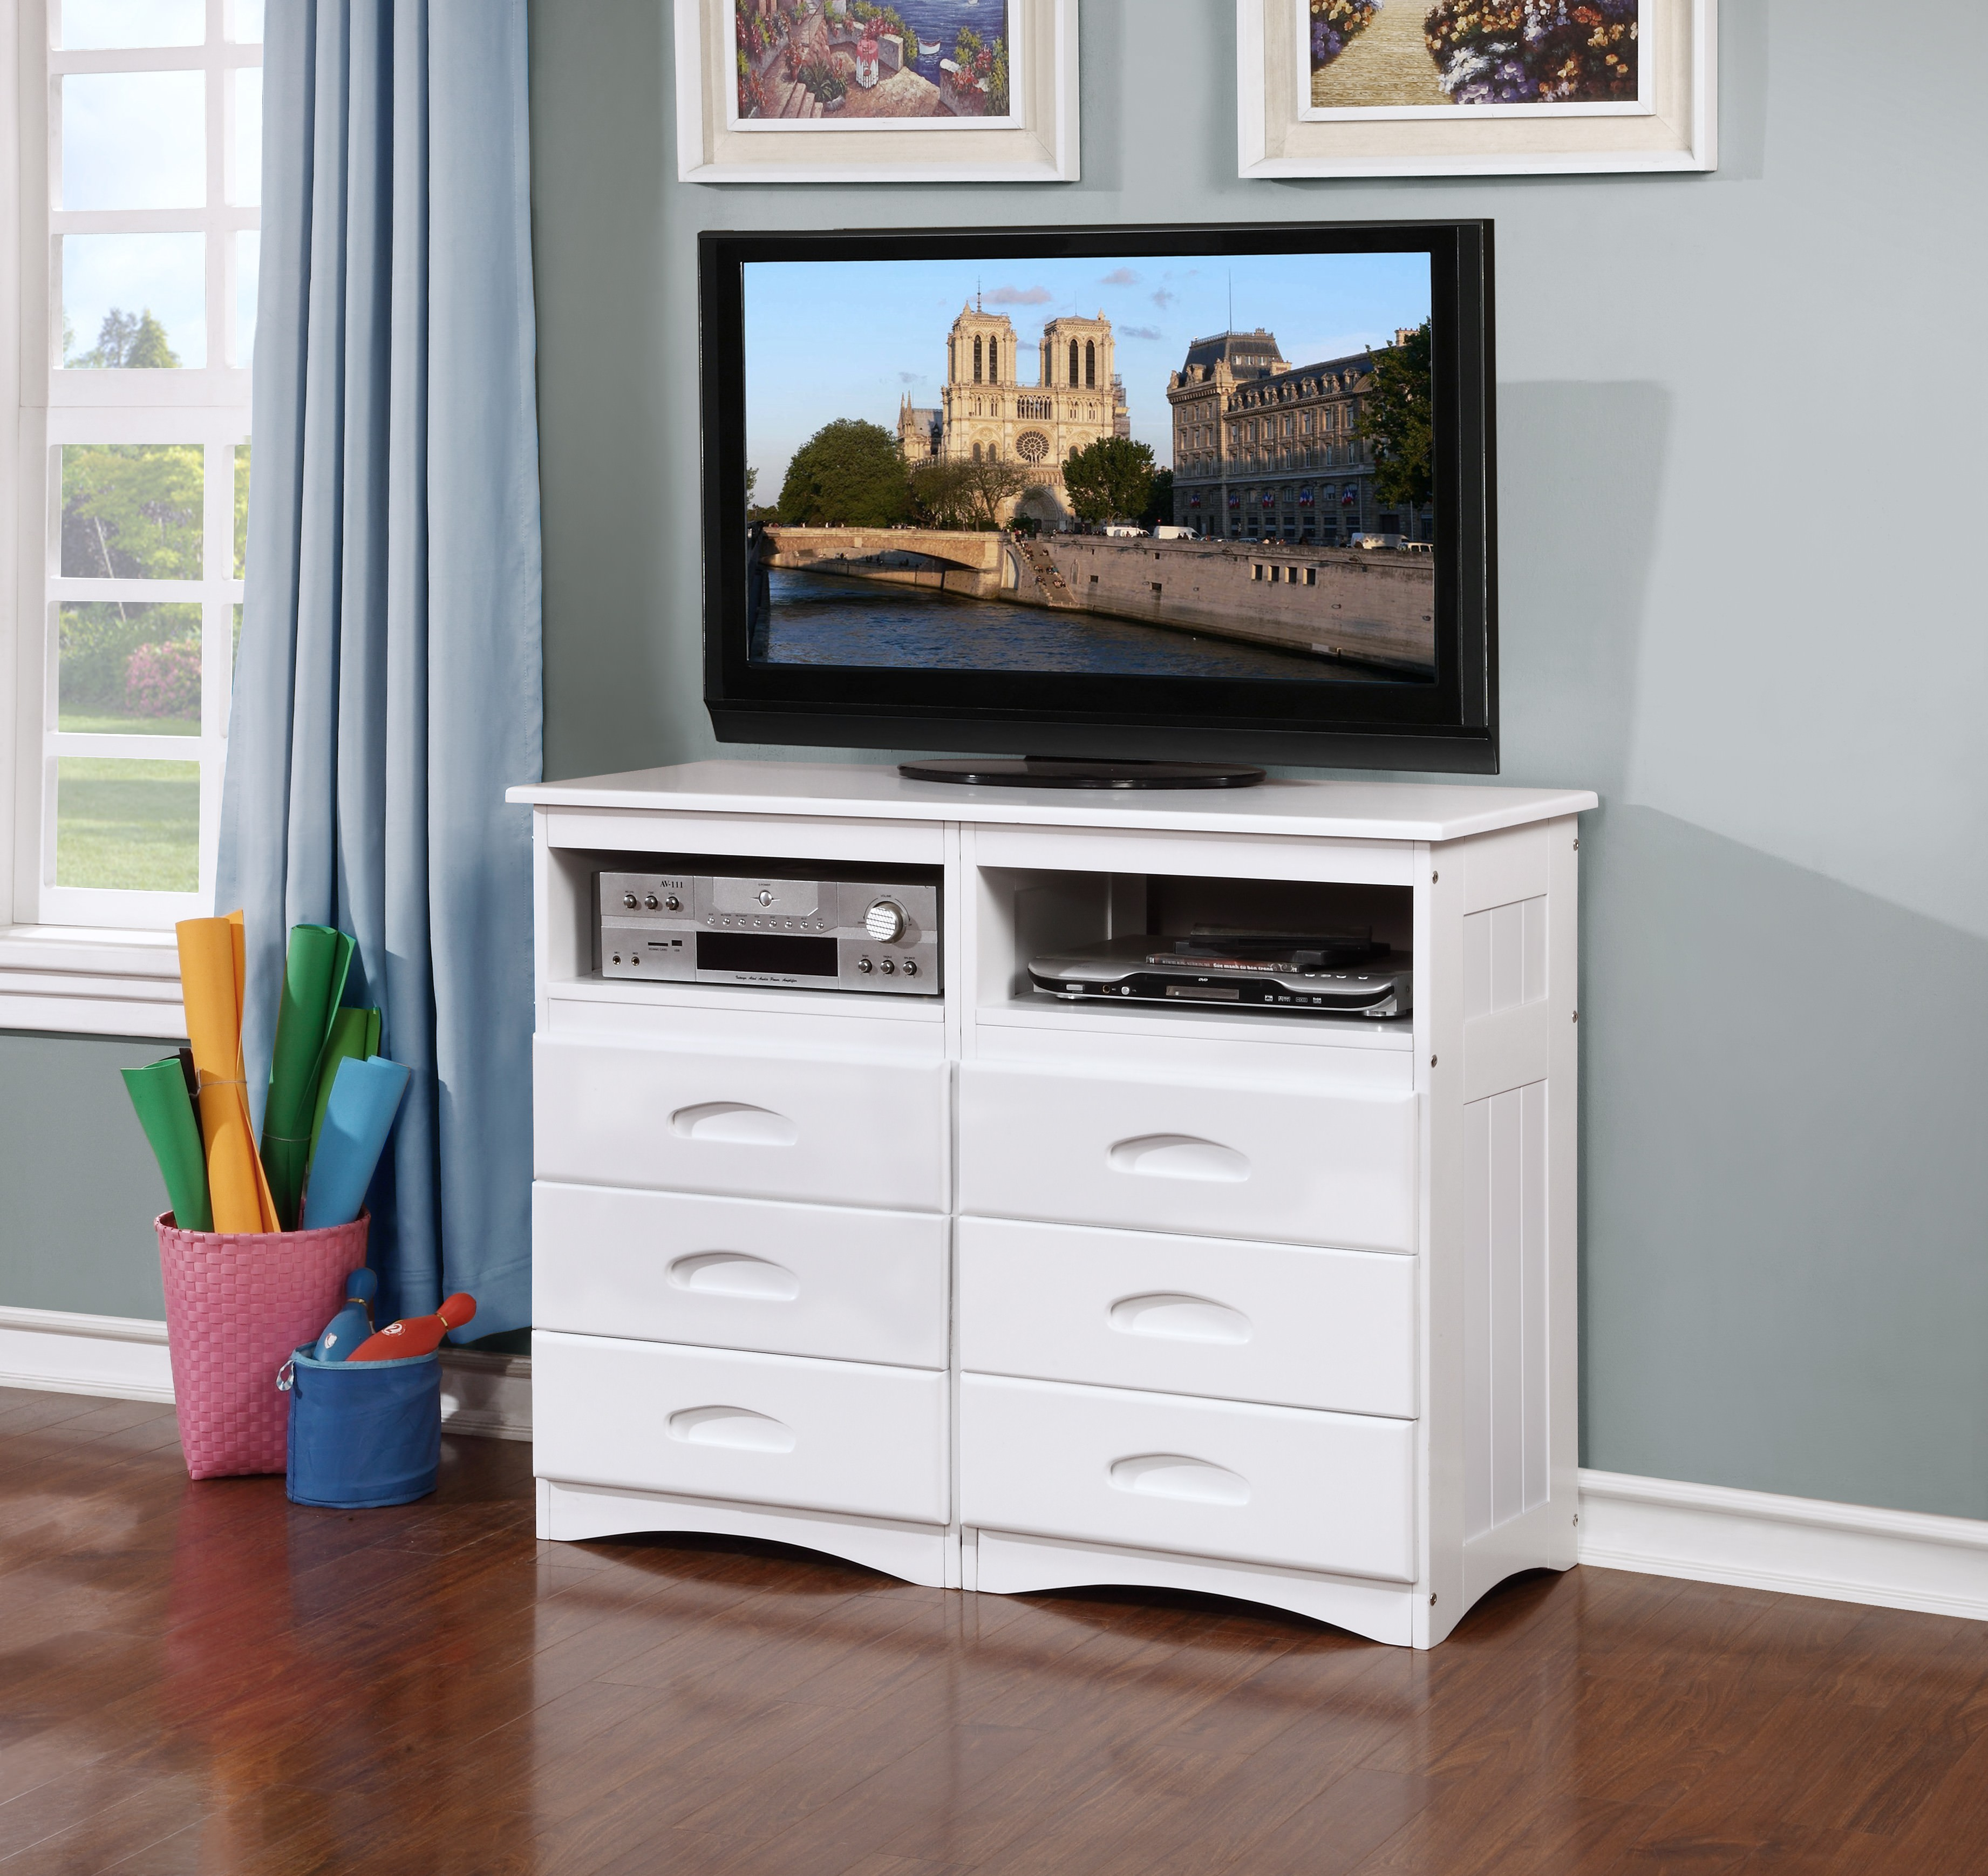 American Furniture Classics Model 0271, Solid Pine Entertainment Dresser with Six Drawers and Two Component Areas in White